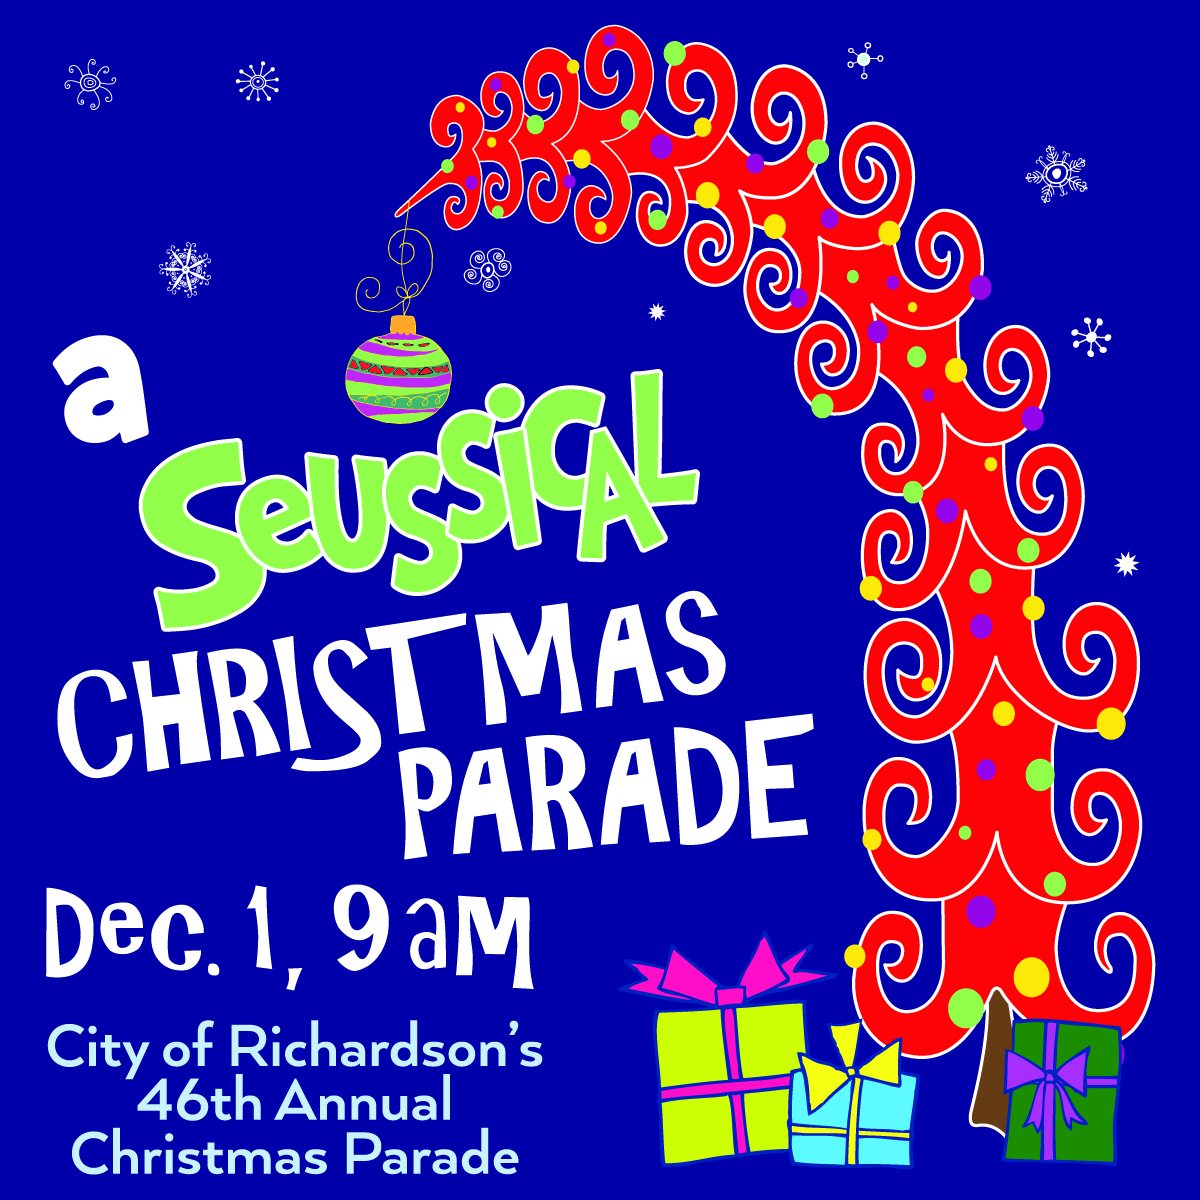 46th Annual Christmas Parade is Dec. 1 Sherrard family to serve as Grand Marshals